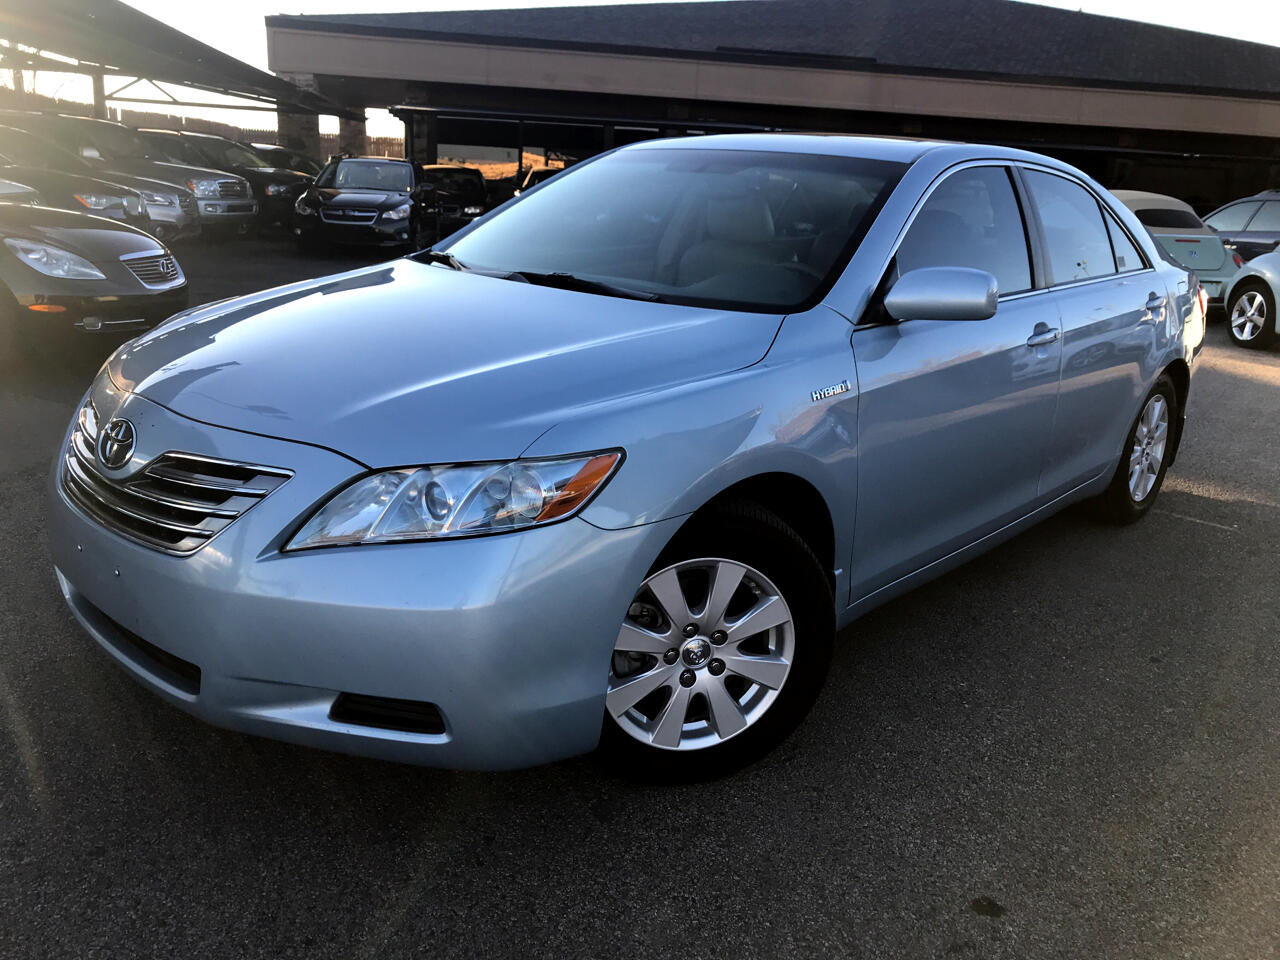 used 2009 toyota camry hybrid 4dr sdn natl for sale in oklahoma city ok 73114 thoroughbred motors. Black Bedroom Furniture Sets. Home Design Ideas